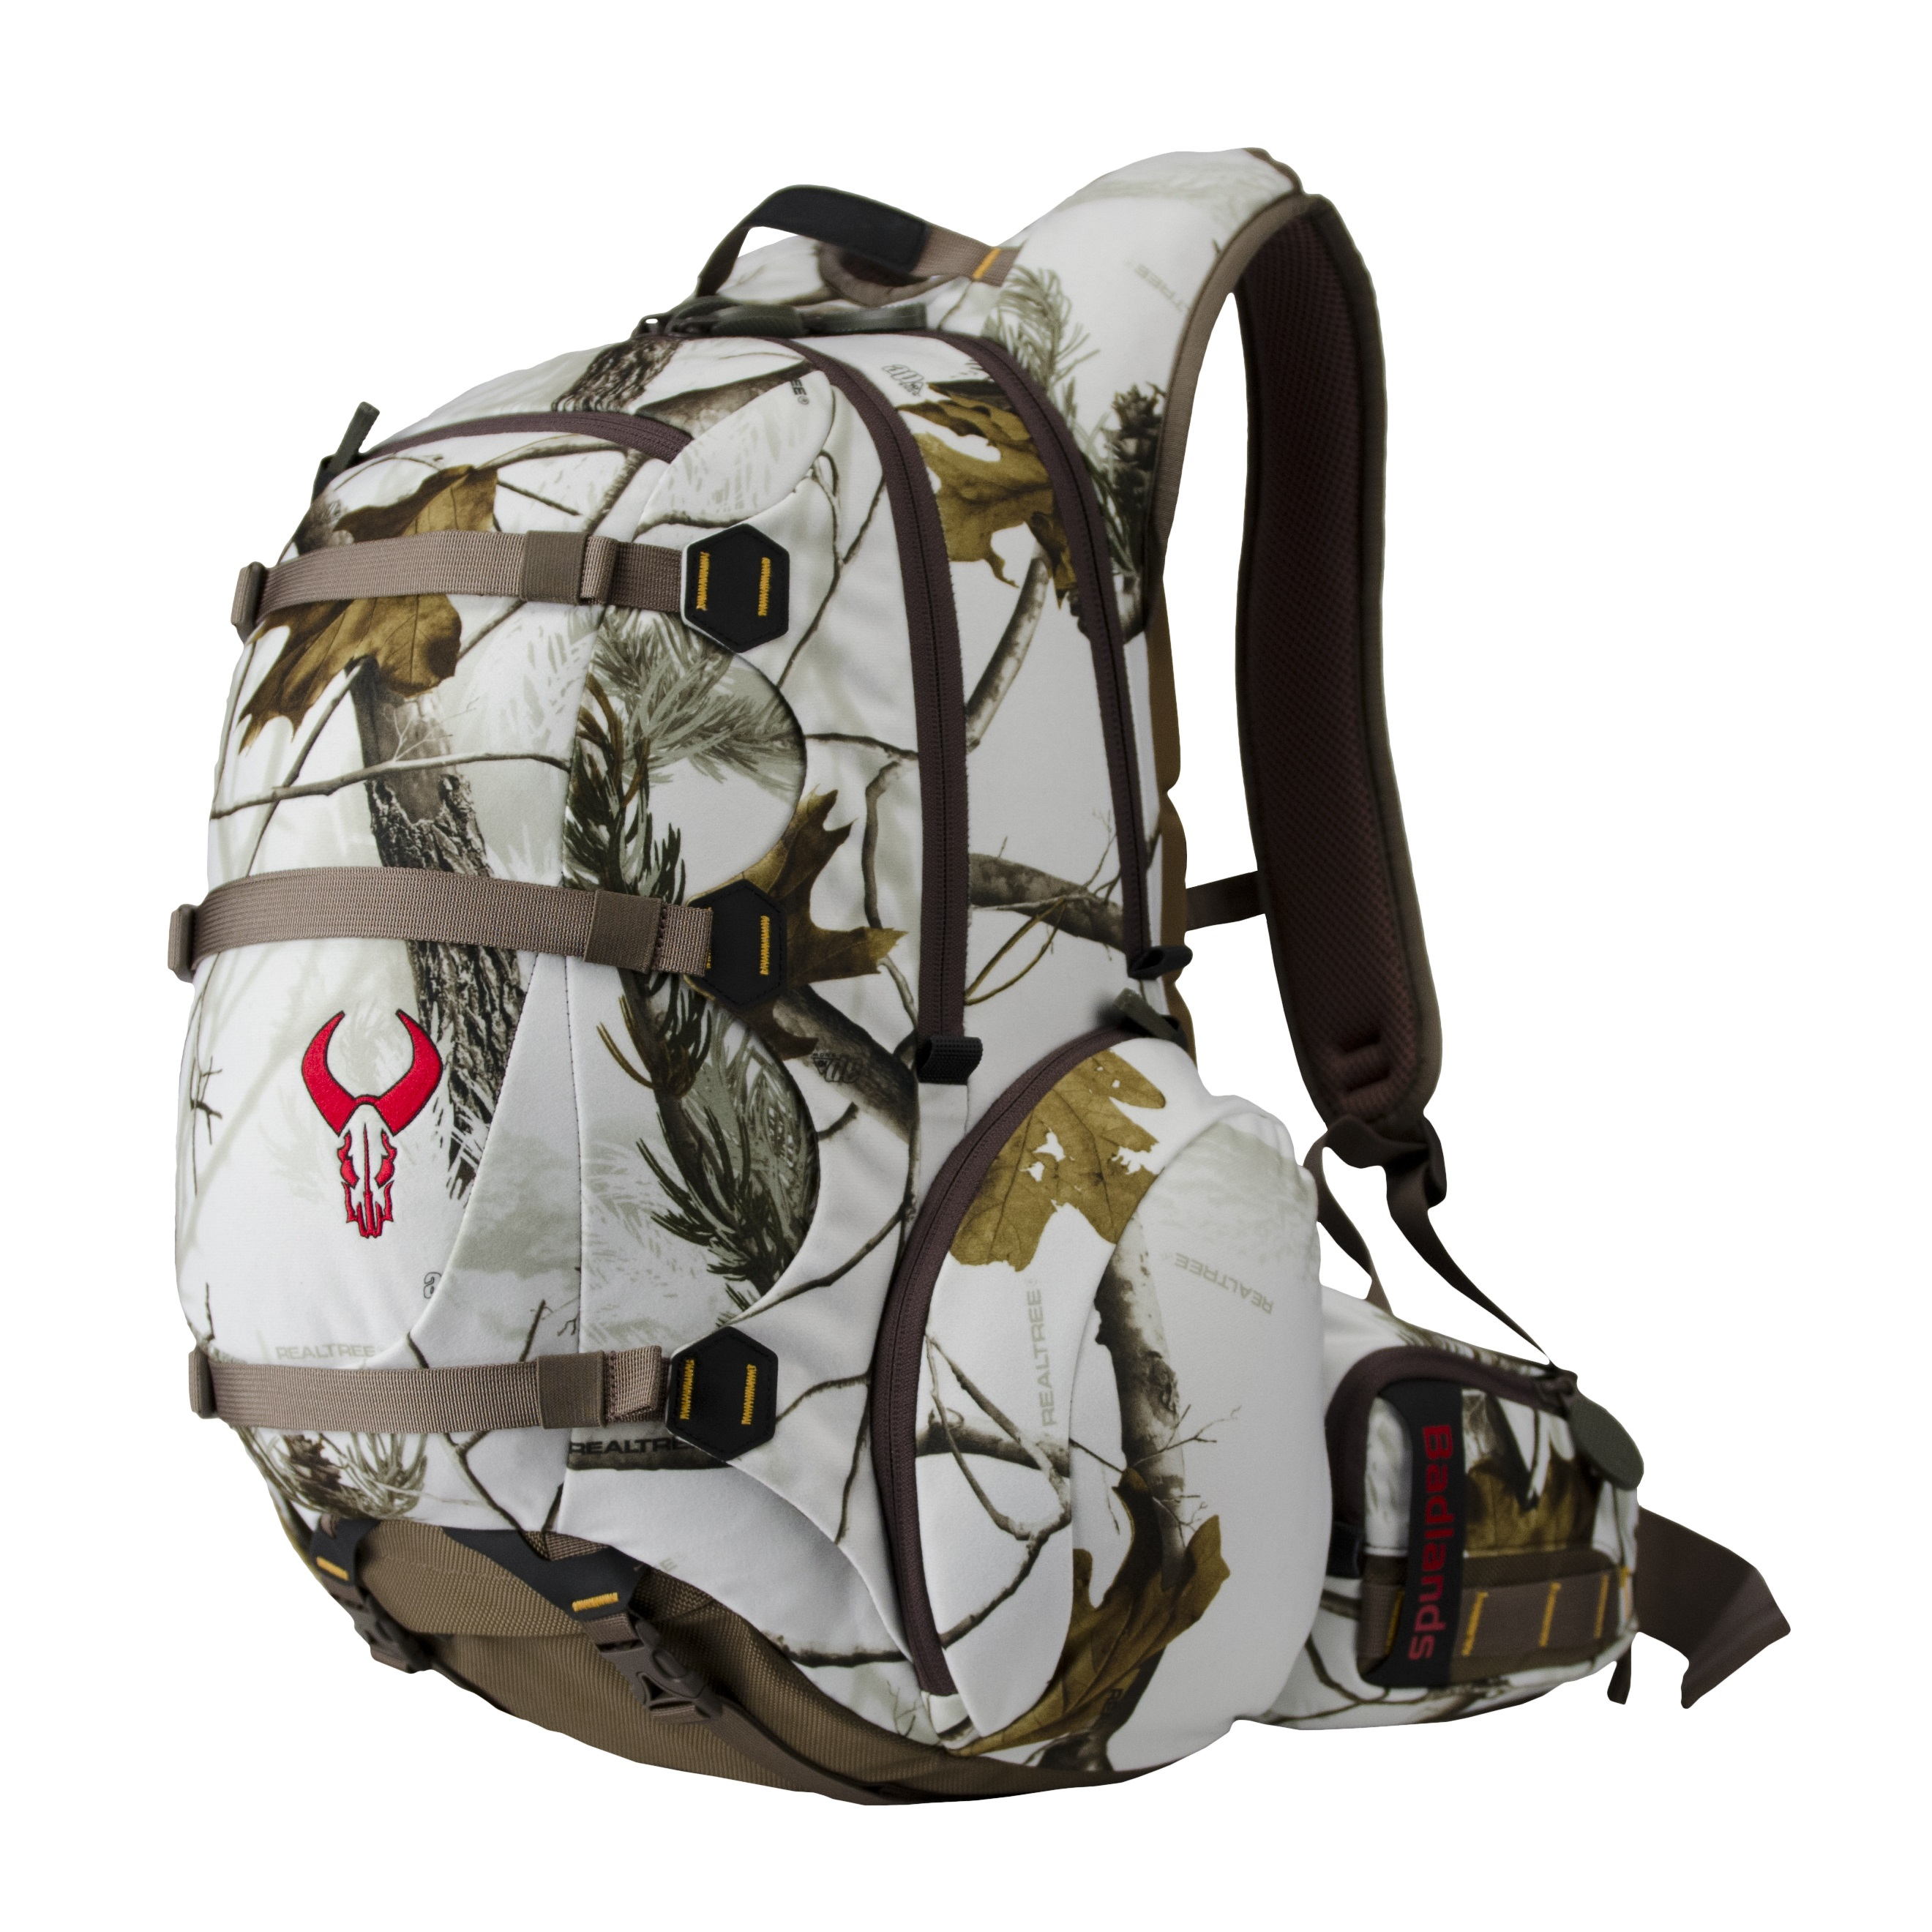 Badlands Packs In Realtree Ap Snow For Limited Time